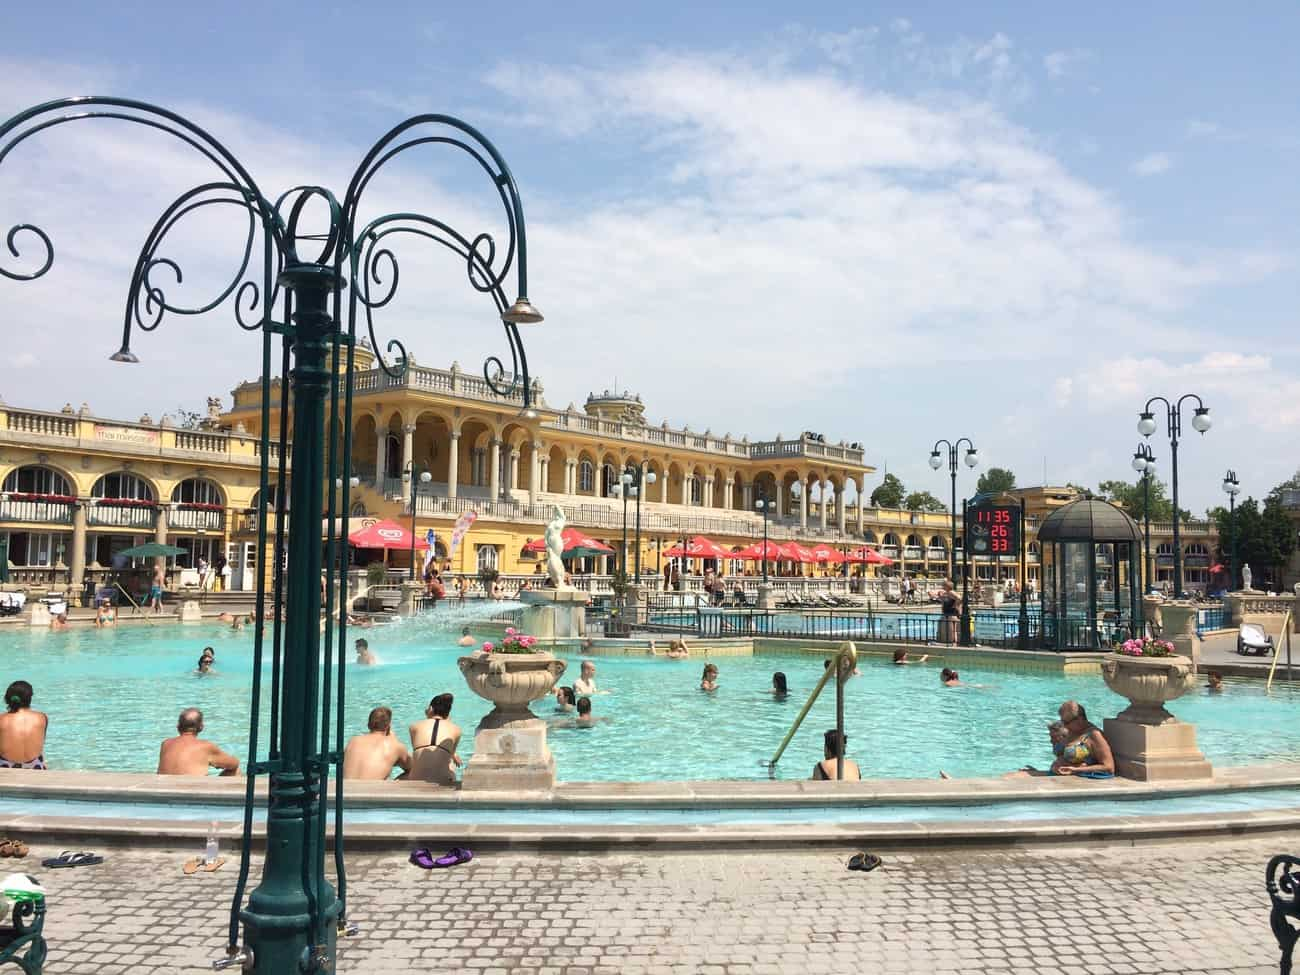 Budapest Széchenyi Baths outdoor thermal pool